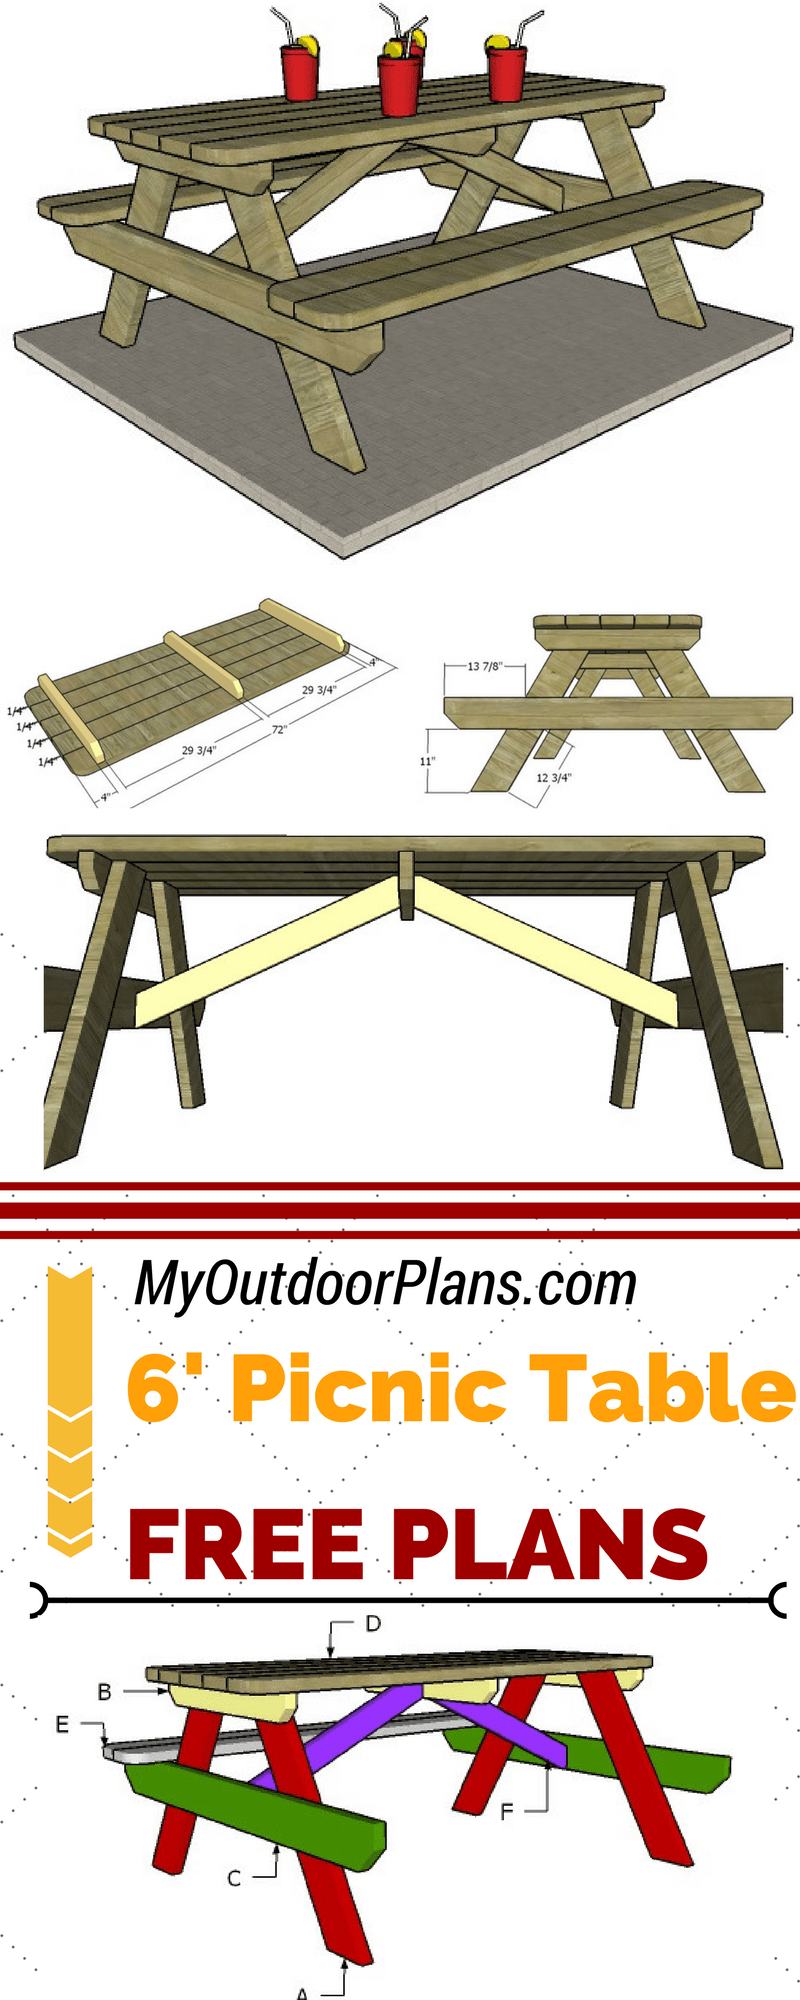 Check Out These Free Plans For Building A 6 Foot Picnic